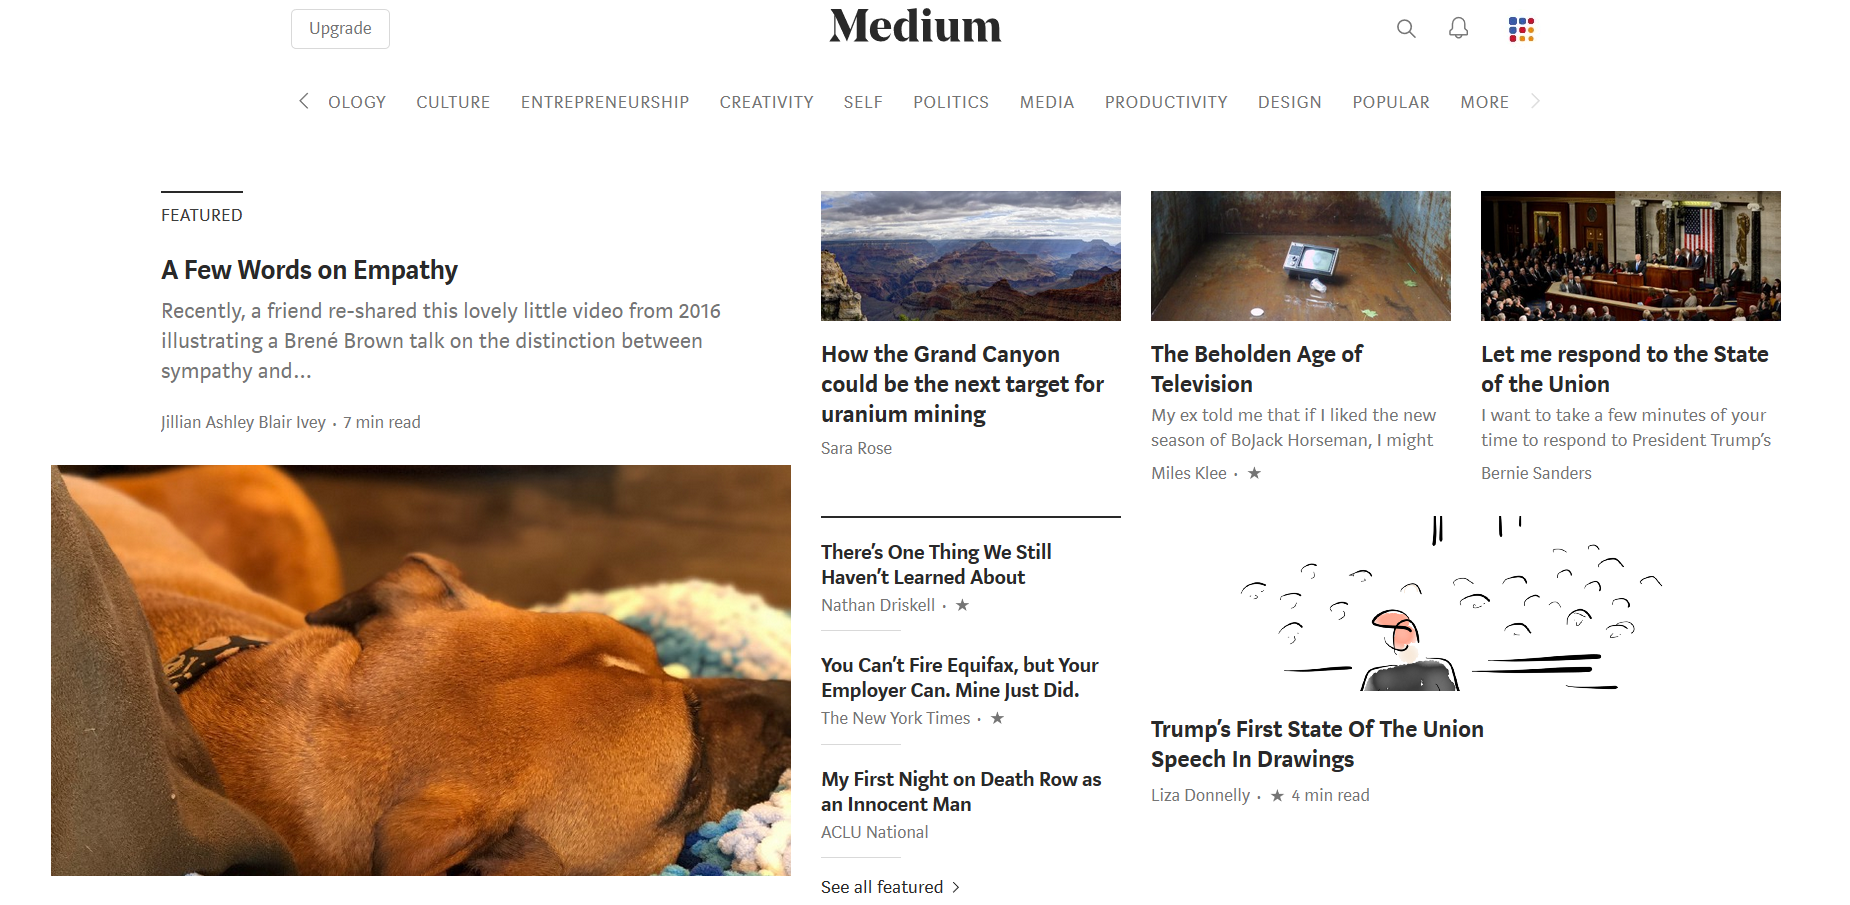 Medium content marketing platform.